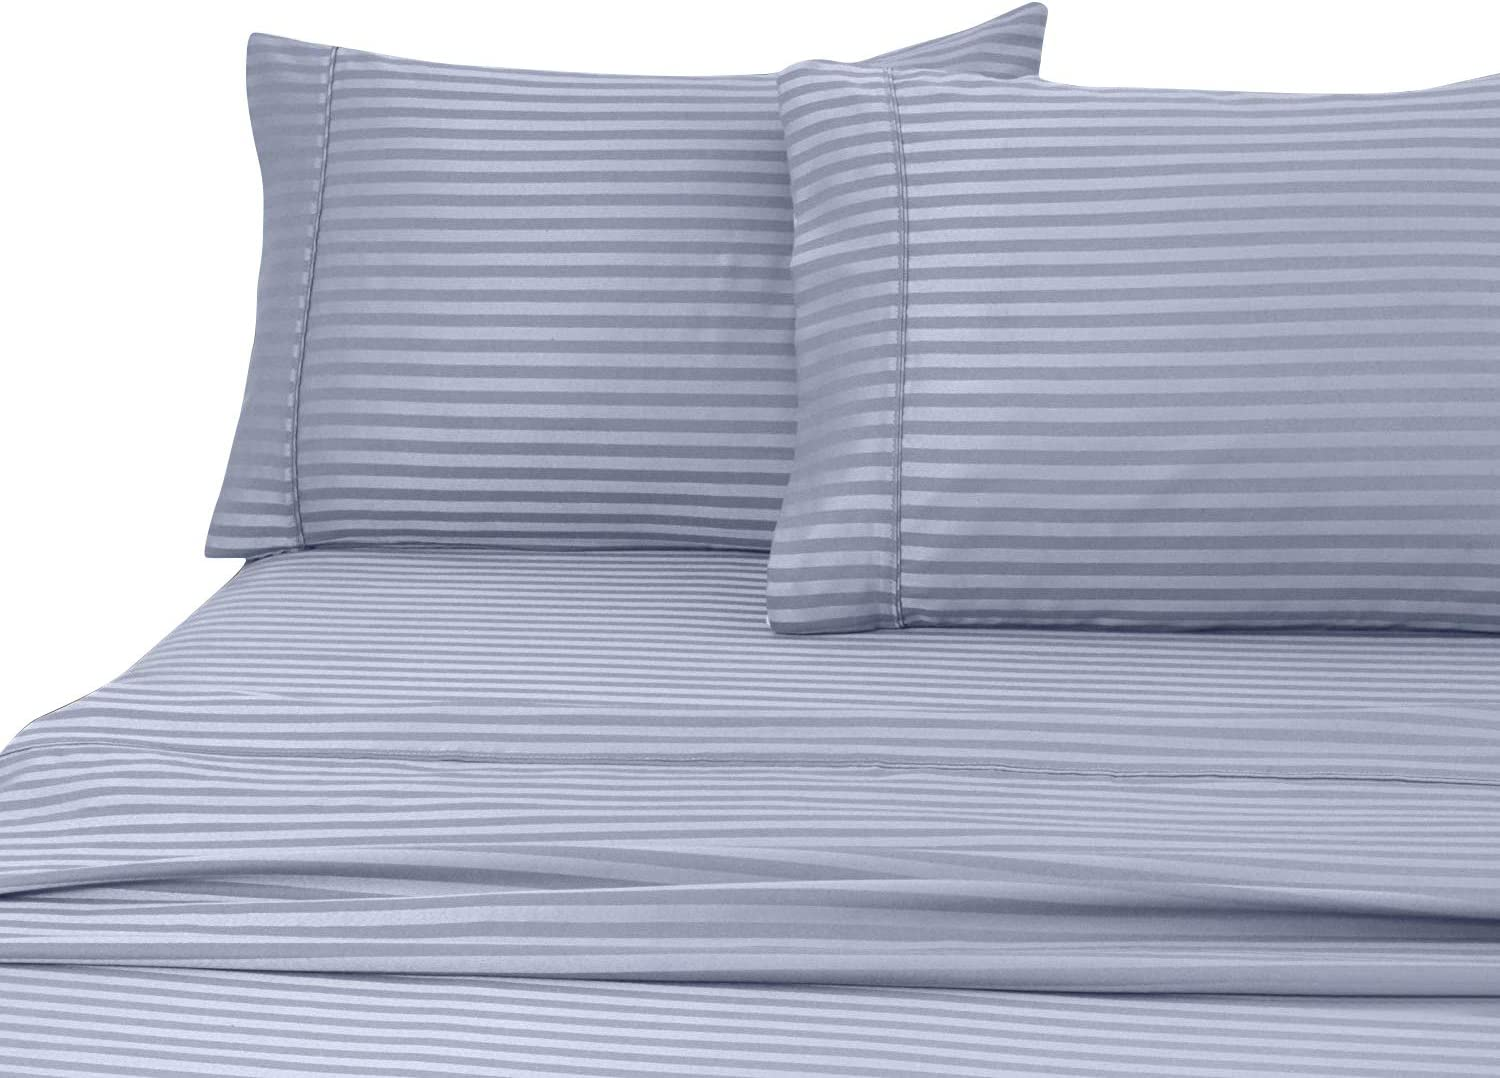 Home Sweet Home Dreams Inc London Collection 800 Thread Count Wrinkle Resistant Woven Stripe 100% Egyptian Cotton 4 Piece Sheet Set (Queen, Blue)